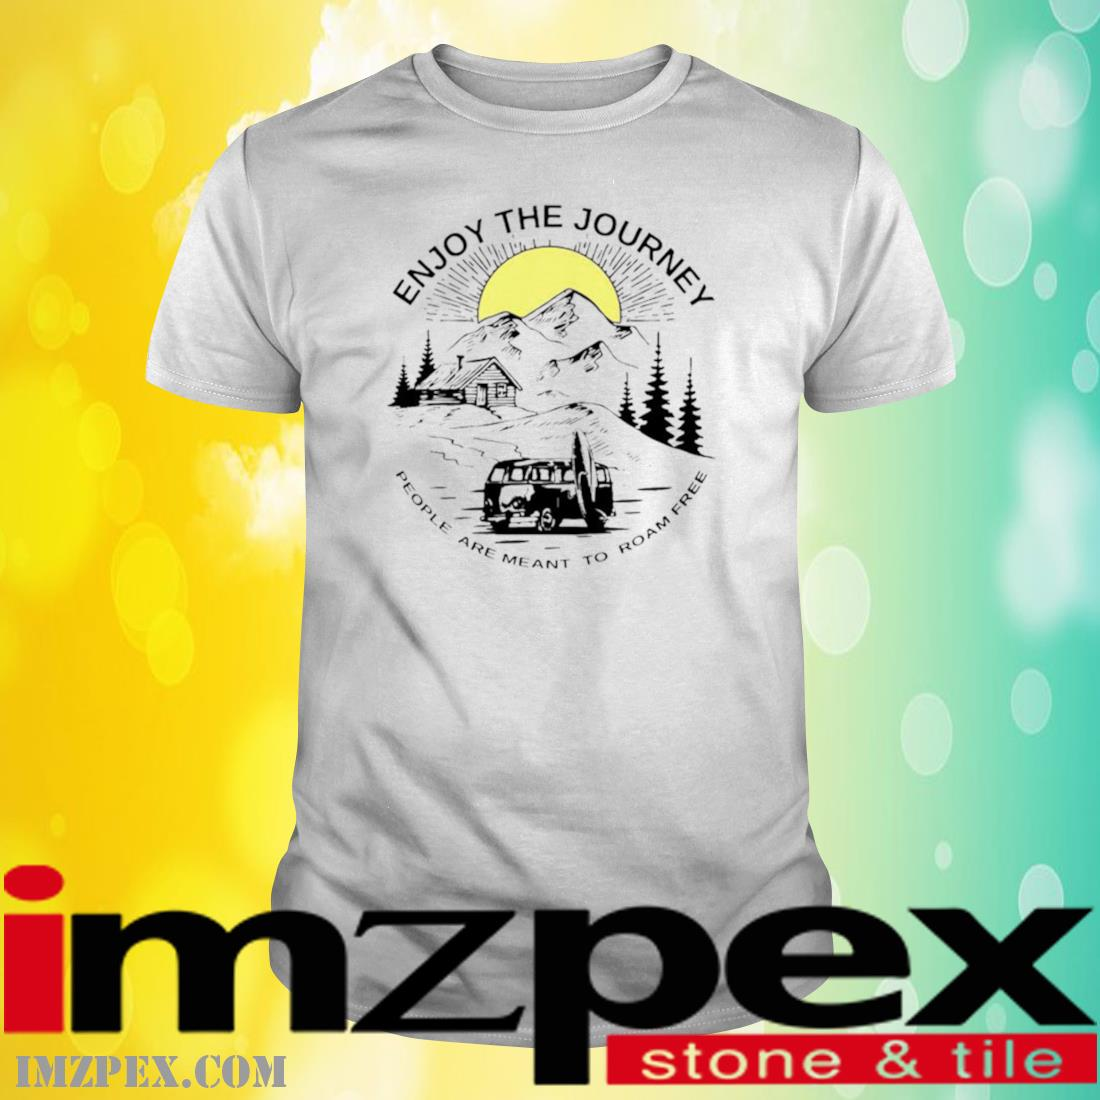 Enjoy The Journey People Are Meant To Roam Free Shirt